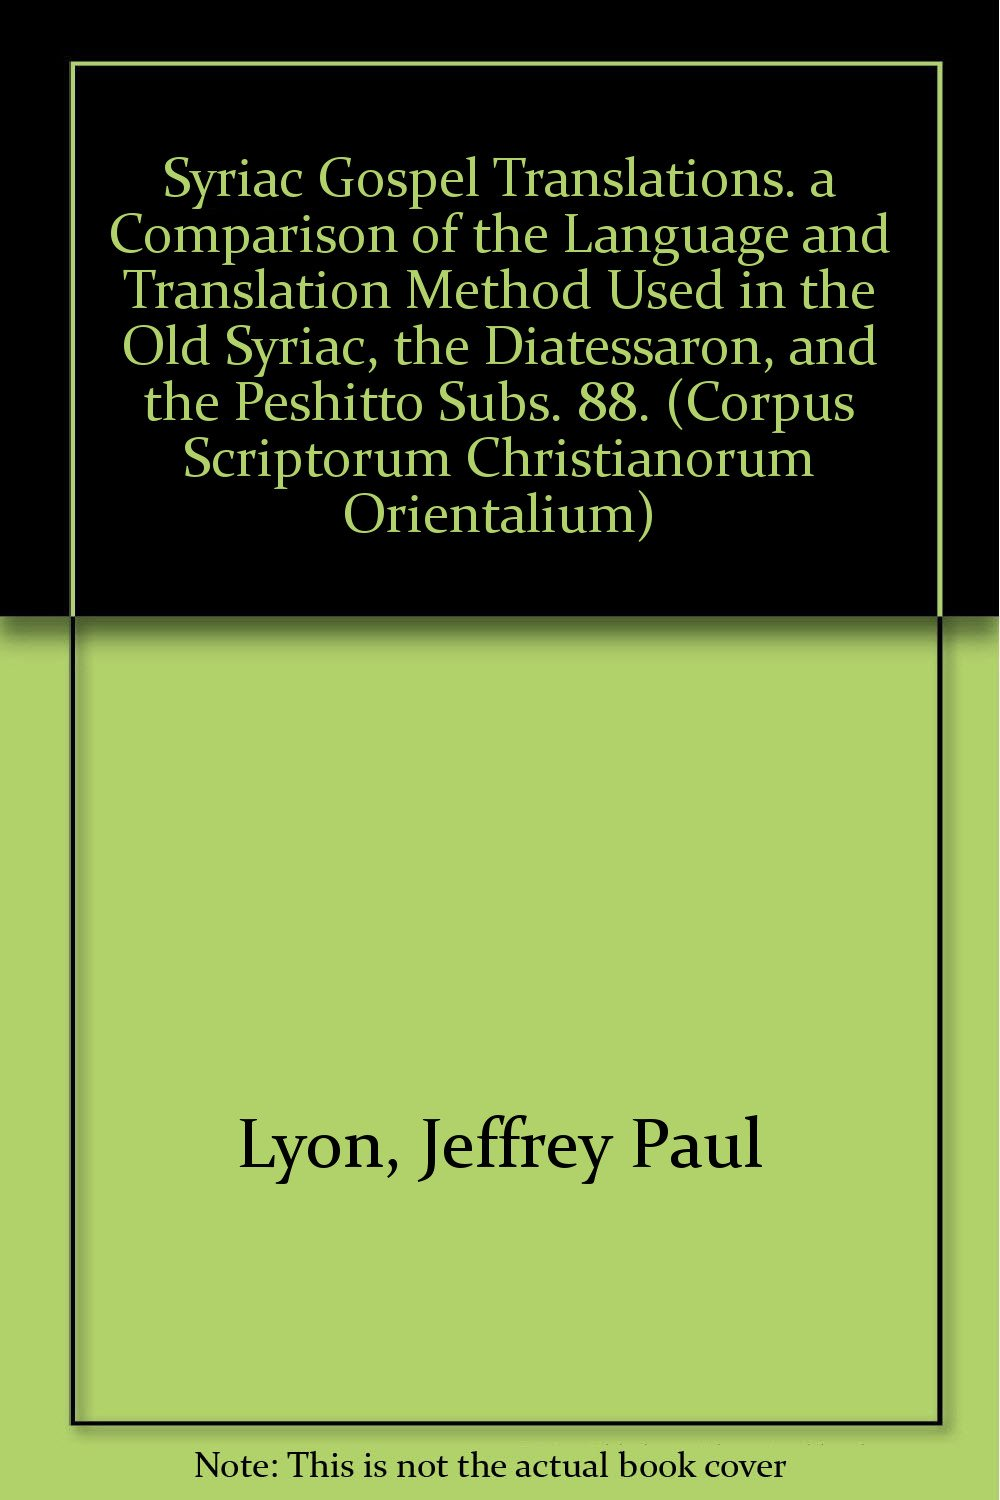 Syriac Gospel Translations. A Comparison of the Language and Translation Method Used in the Old Syriac, the Diatessaron, and the Peshitto (Corpus Scriptorum Christianorum Orientalium) by Peeters Publishers